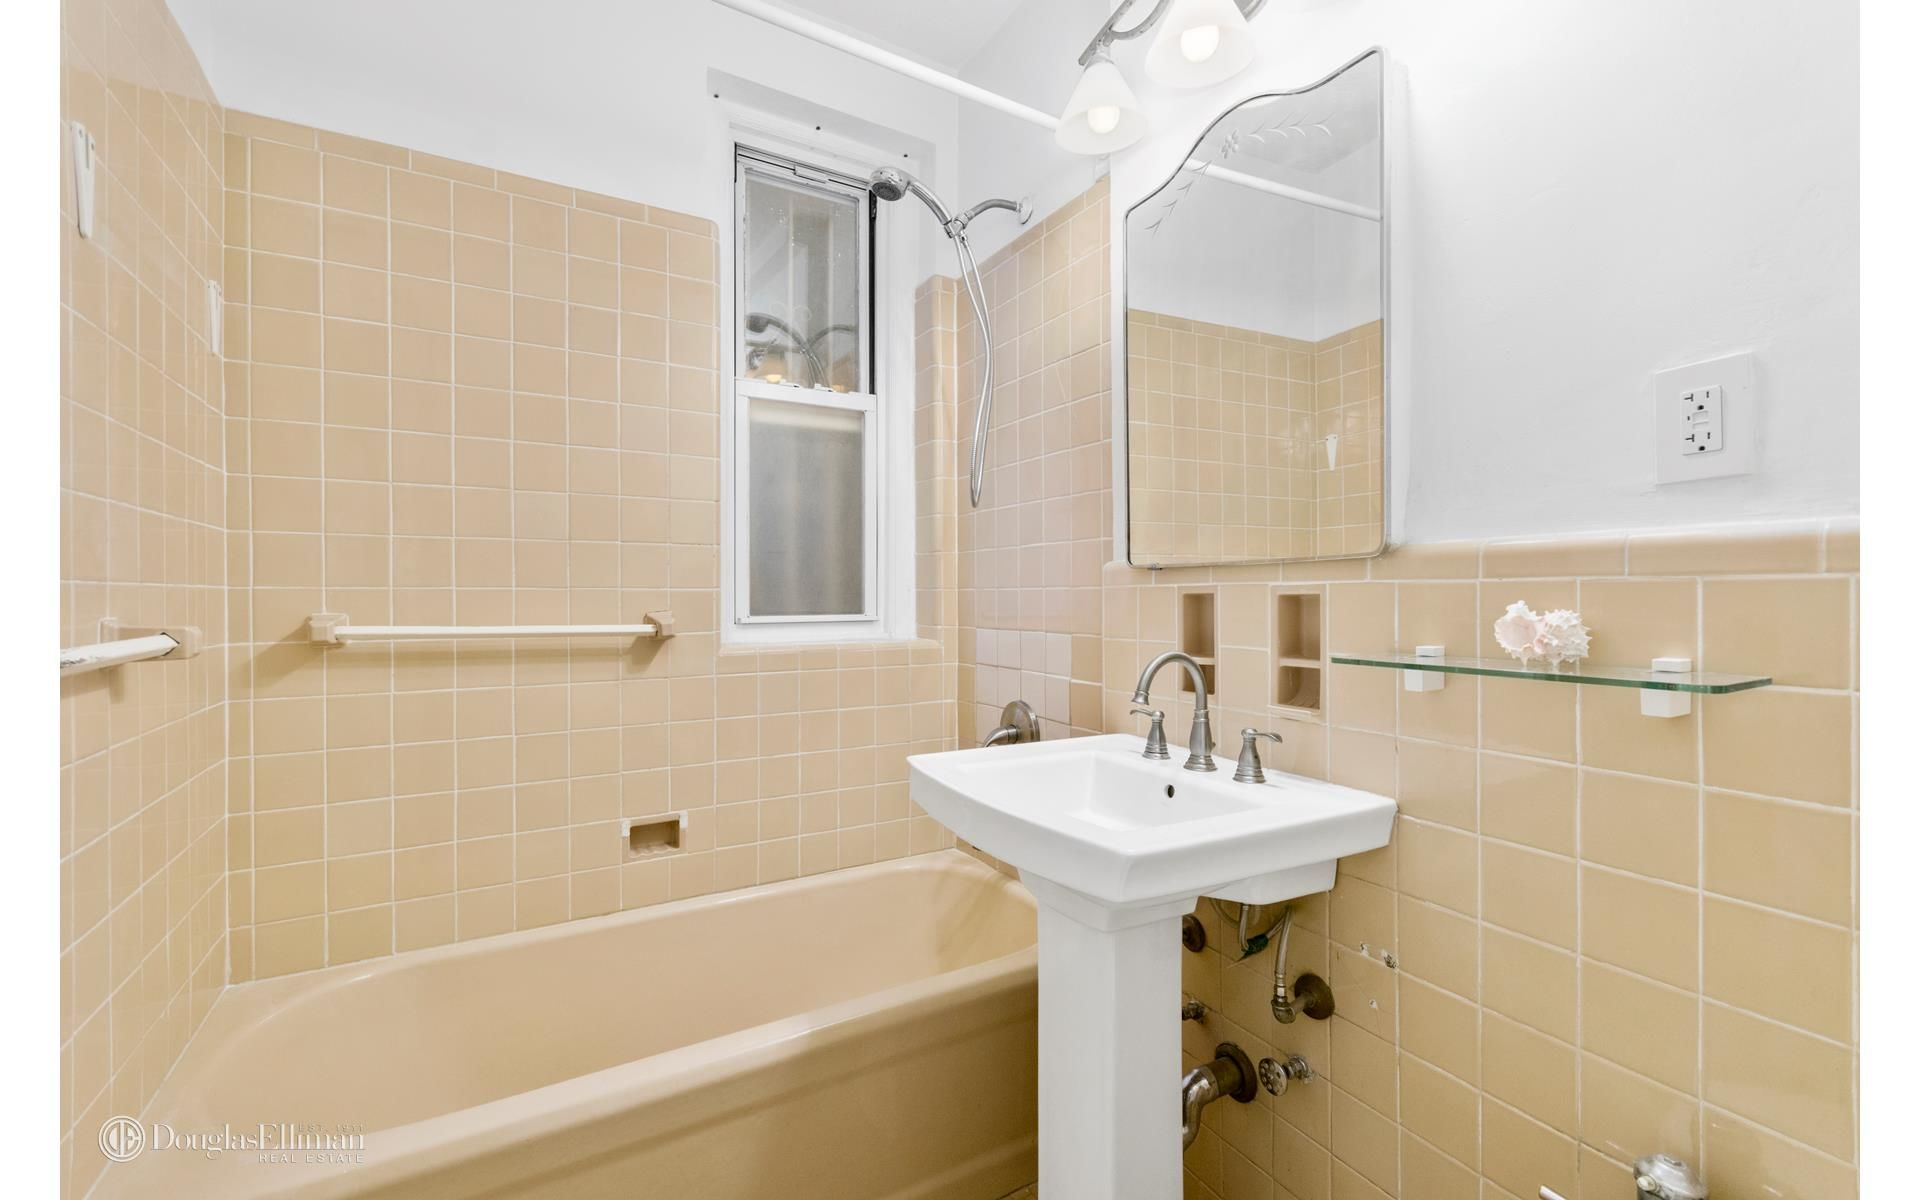 1409 Albemarle Rd, APT 1H Photo 5 - ELLIMAN-3138656